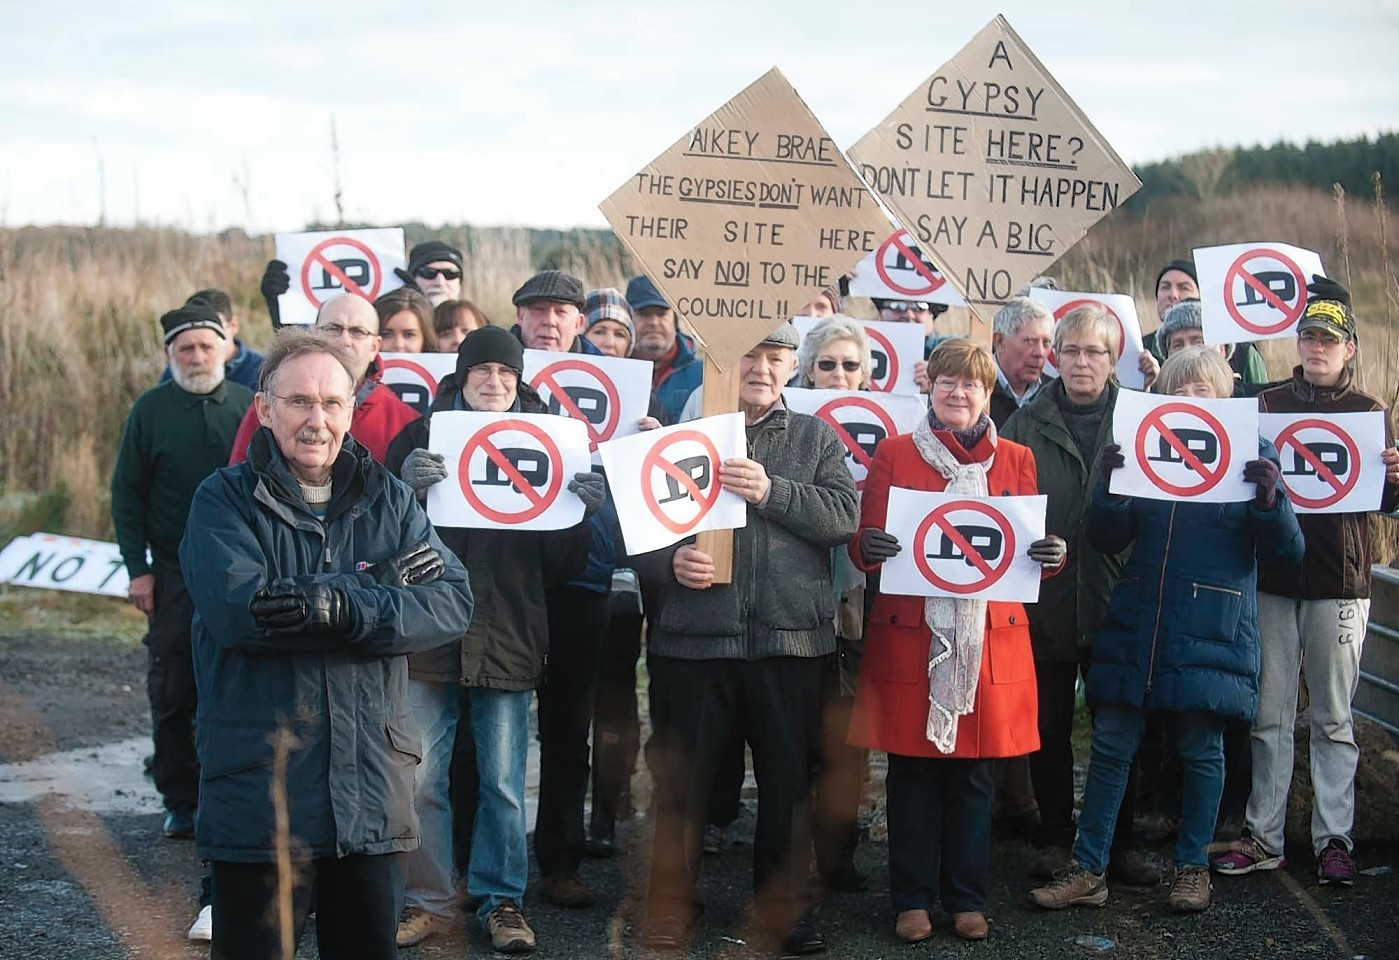 Old Deer residents are protesting the proposed re-opening of Aikey Brea, as a site for travellers.